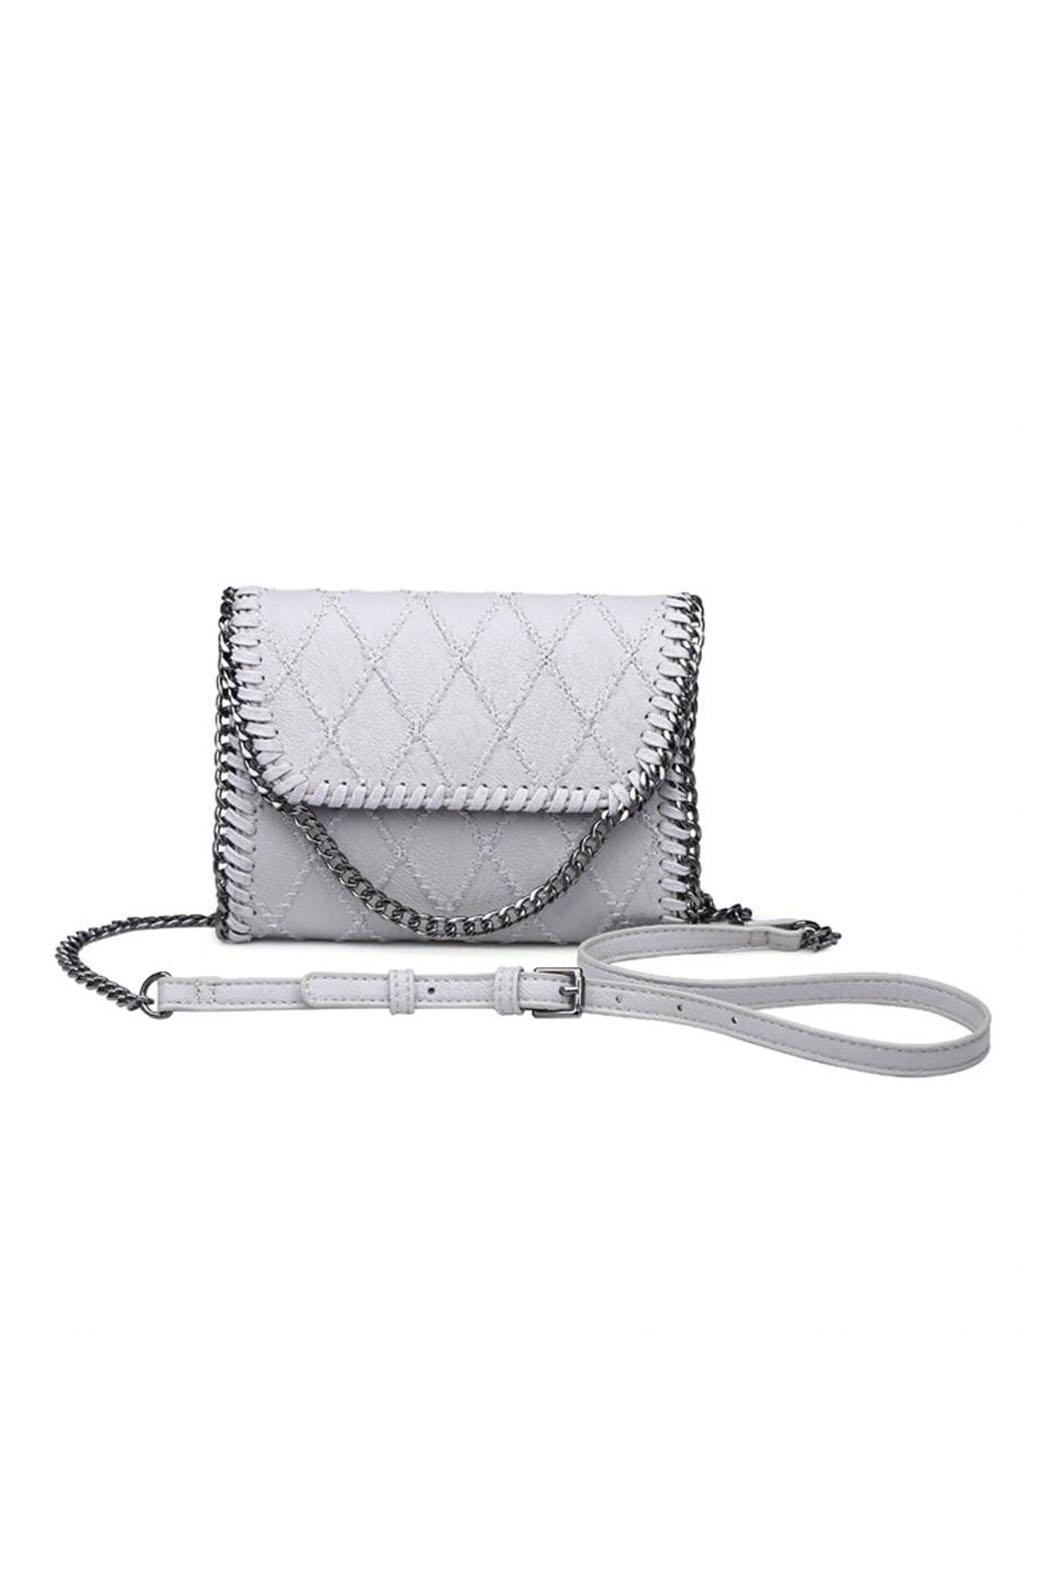 Urban Expressions Misty Crossbody Bag - Front Cropped Image